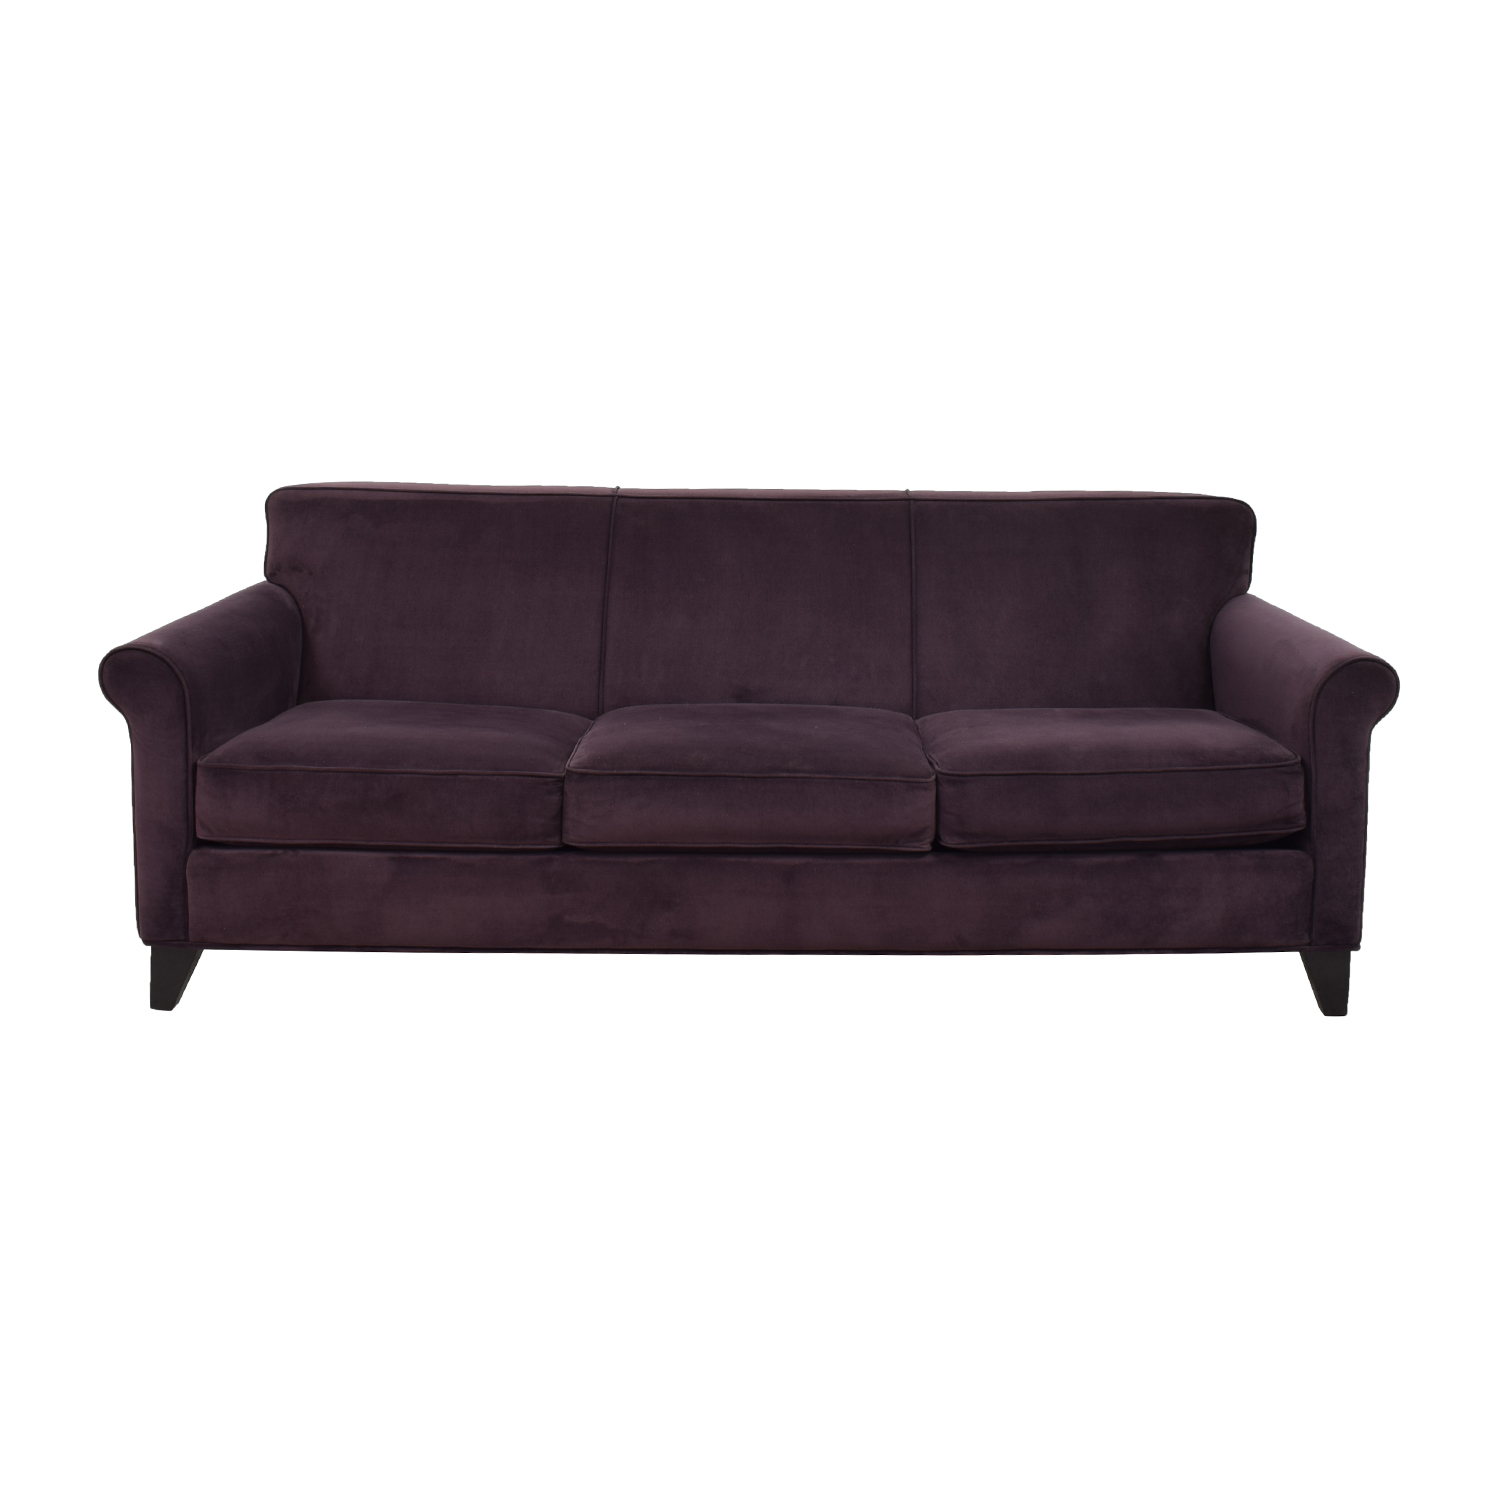 Raymour & Flanigan Raymour & Flanigan Purple Velvet Three-Cushion Sofa on sale